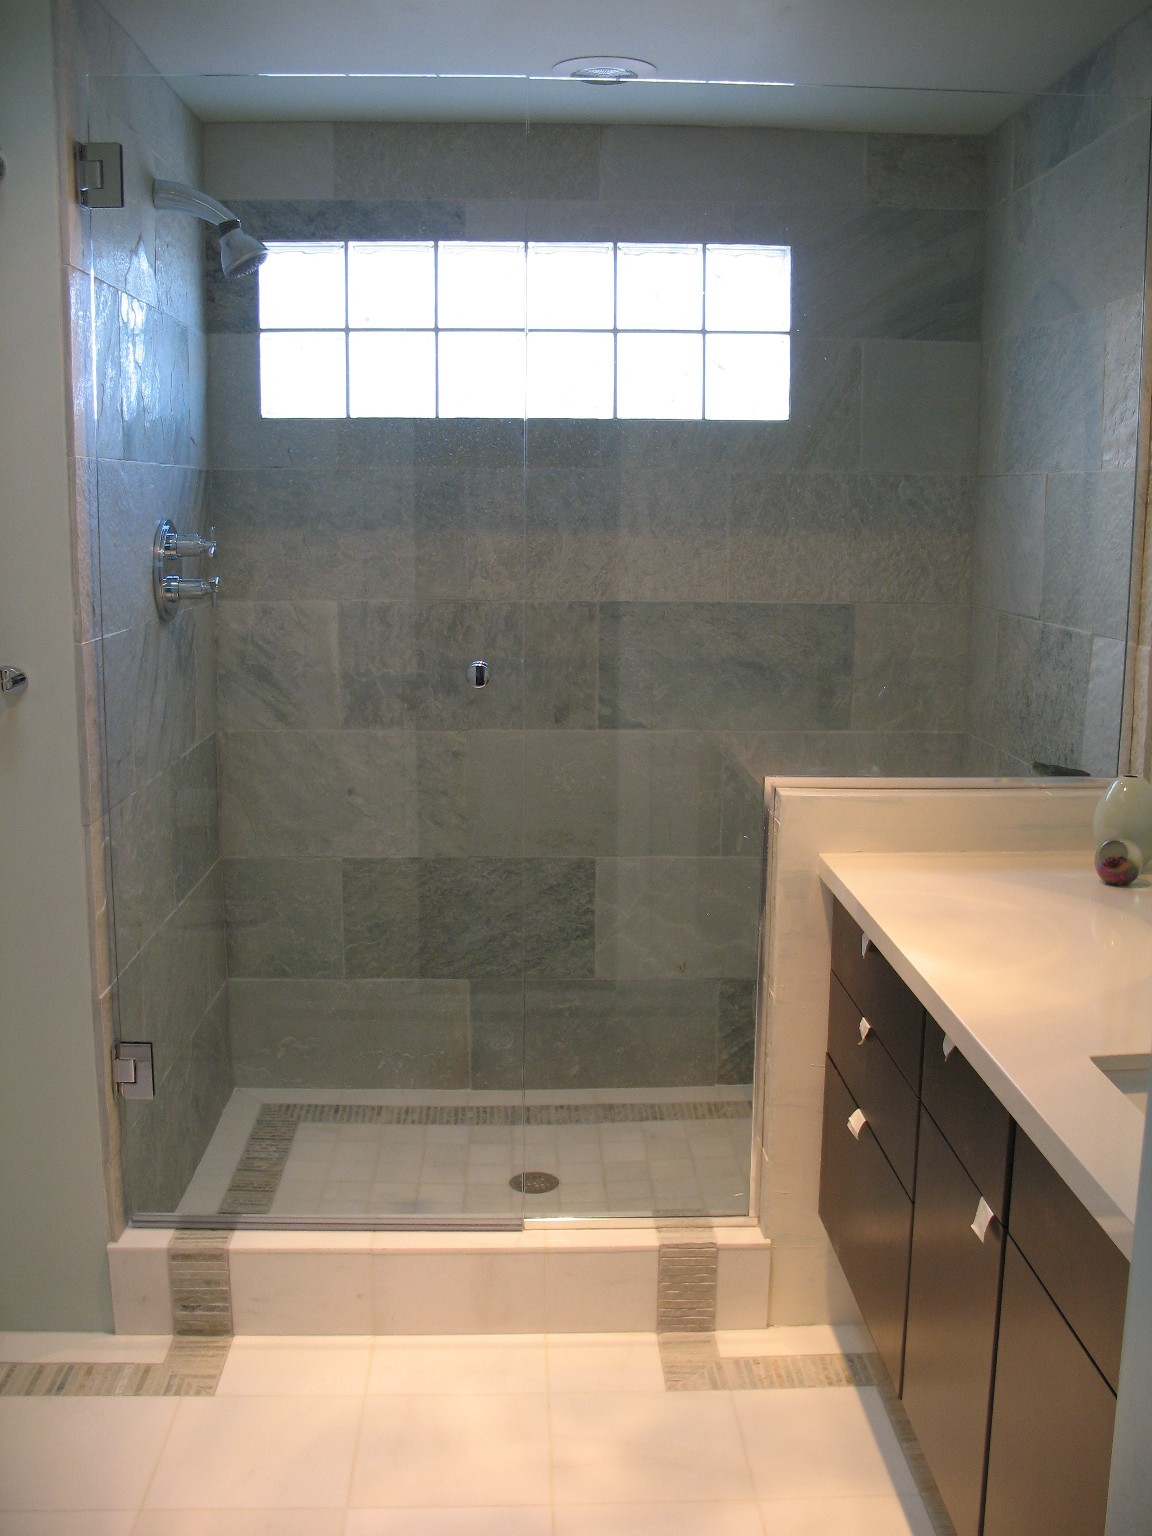 30 shower tile ideas on a budget Bathroom tub tile design ideas